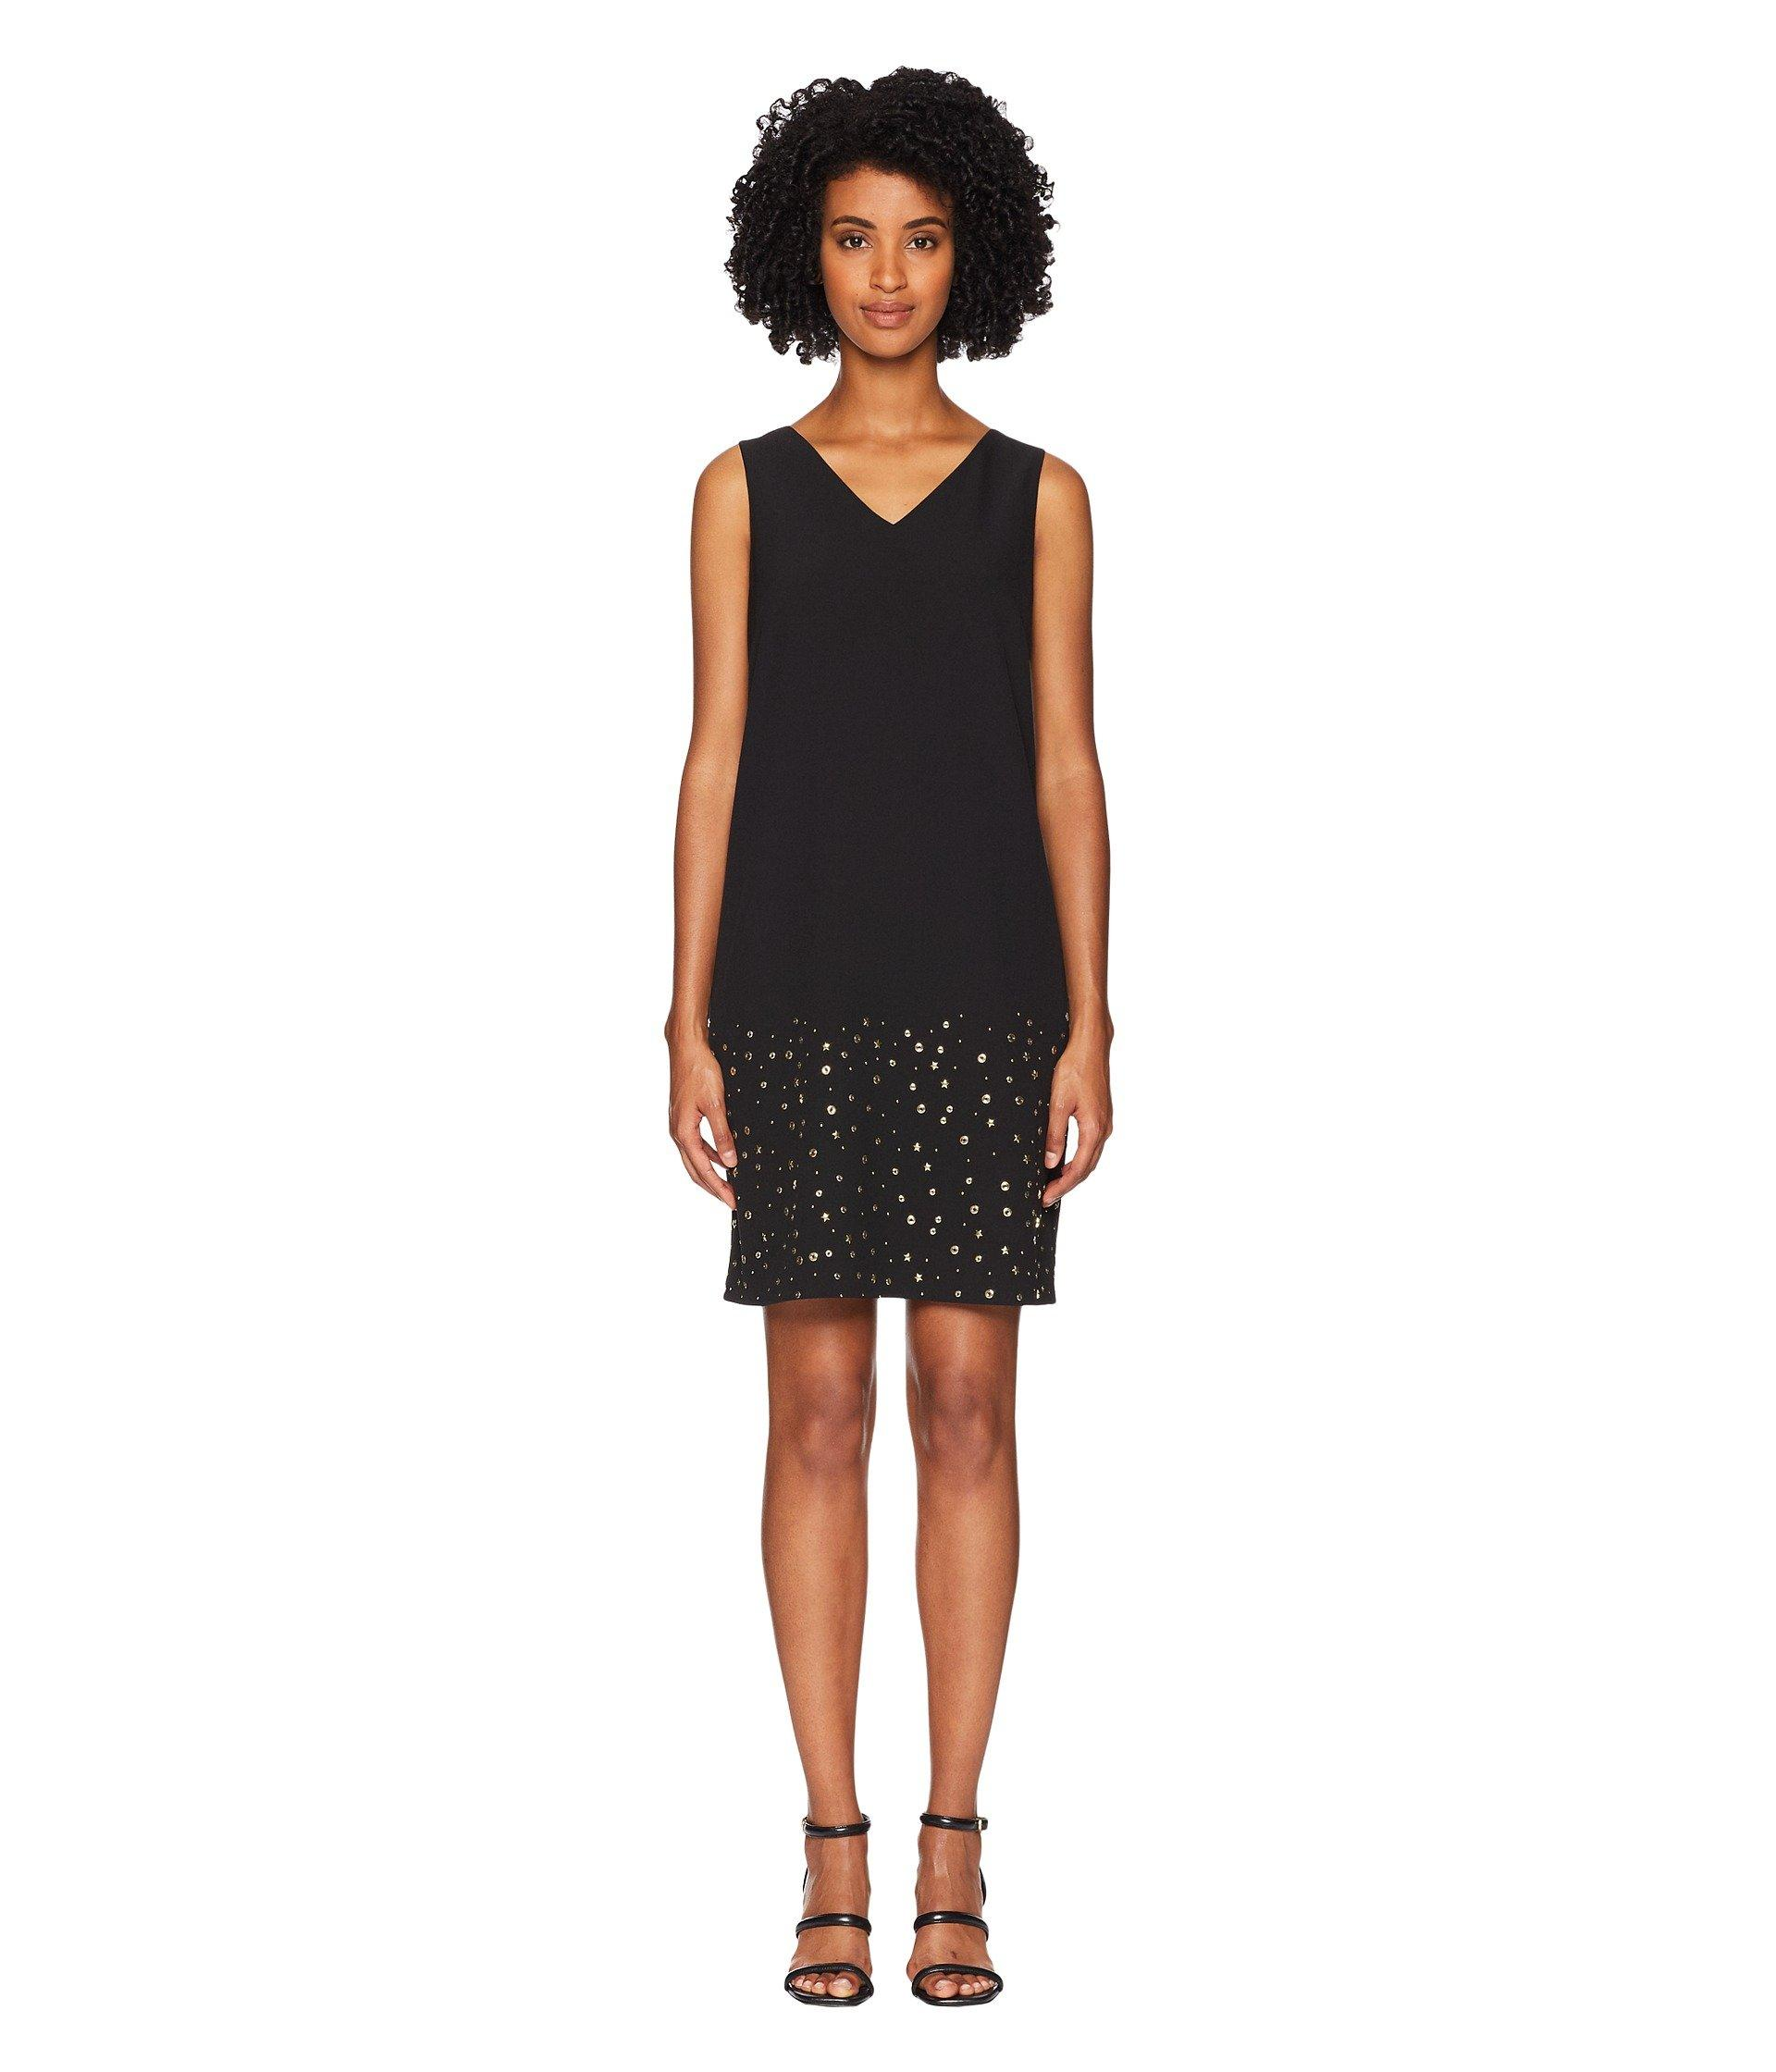 9b479ba5647 Lyst - Boutique Moschino Cady Dress With Star Detail in Black - Save 40%